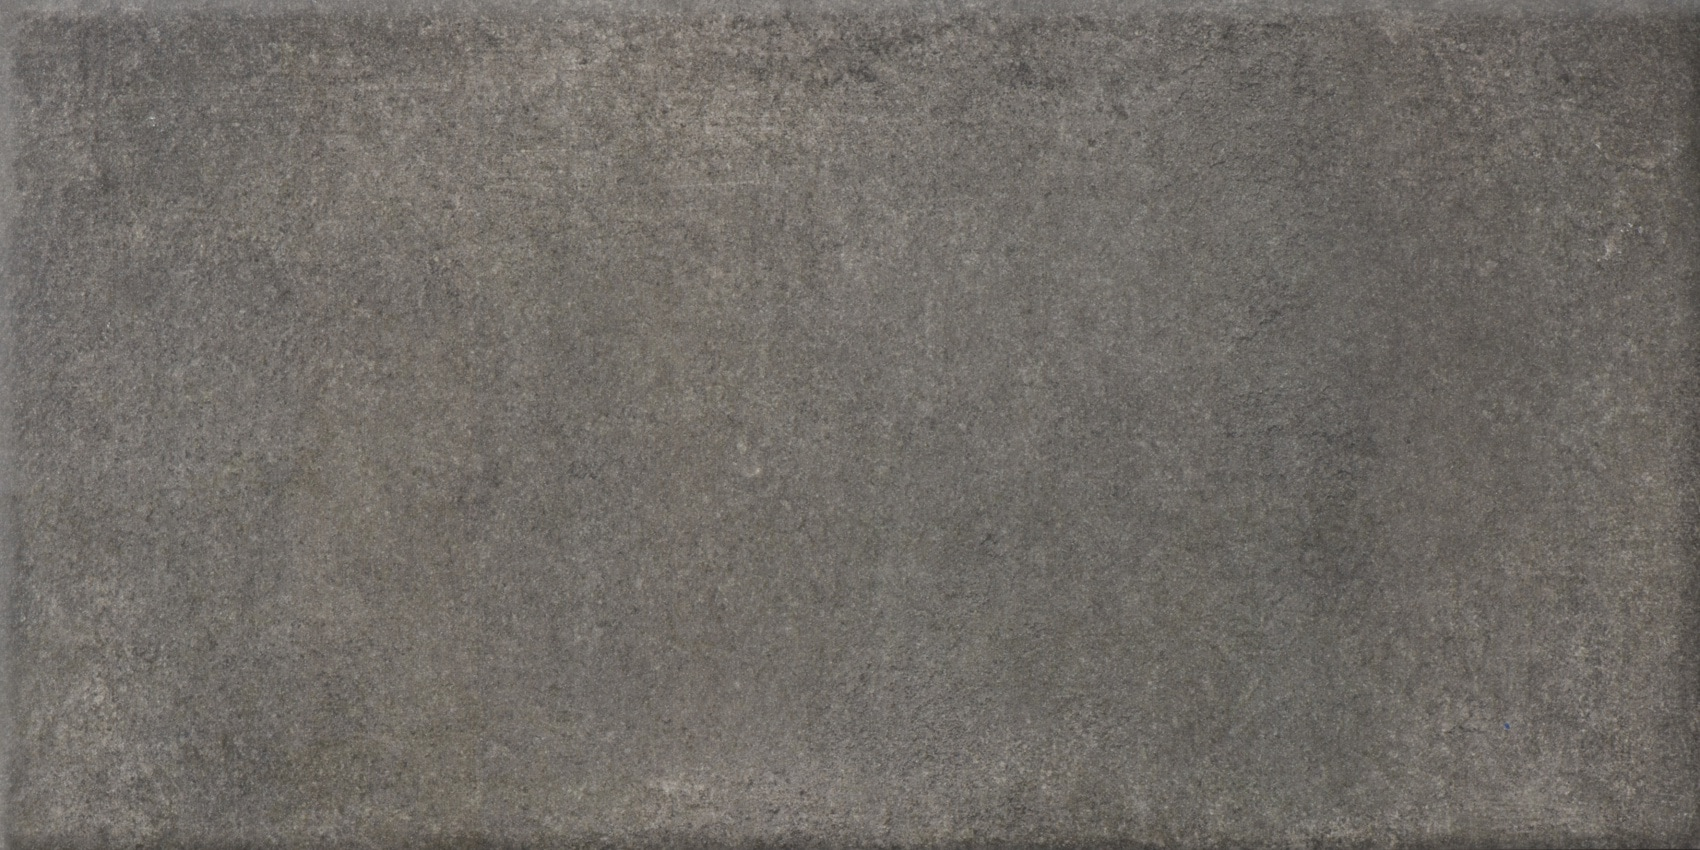 Bricmate B36 Concrete Anthracite 300x600 mm